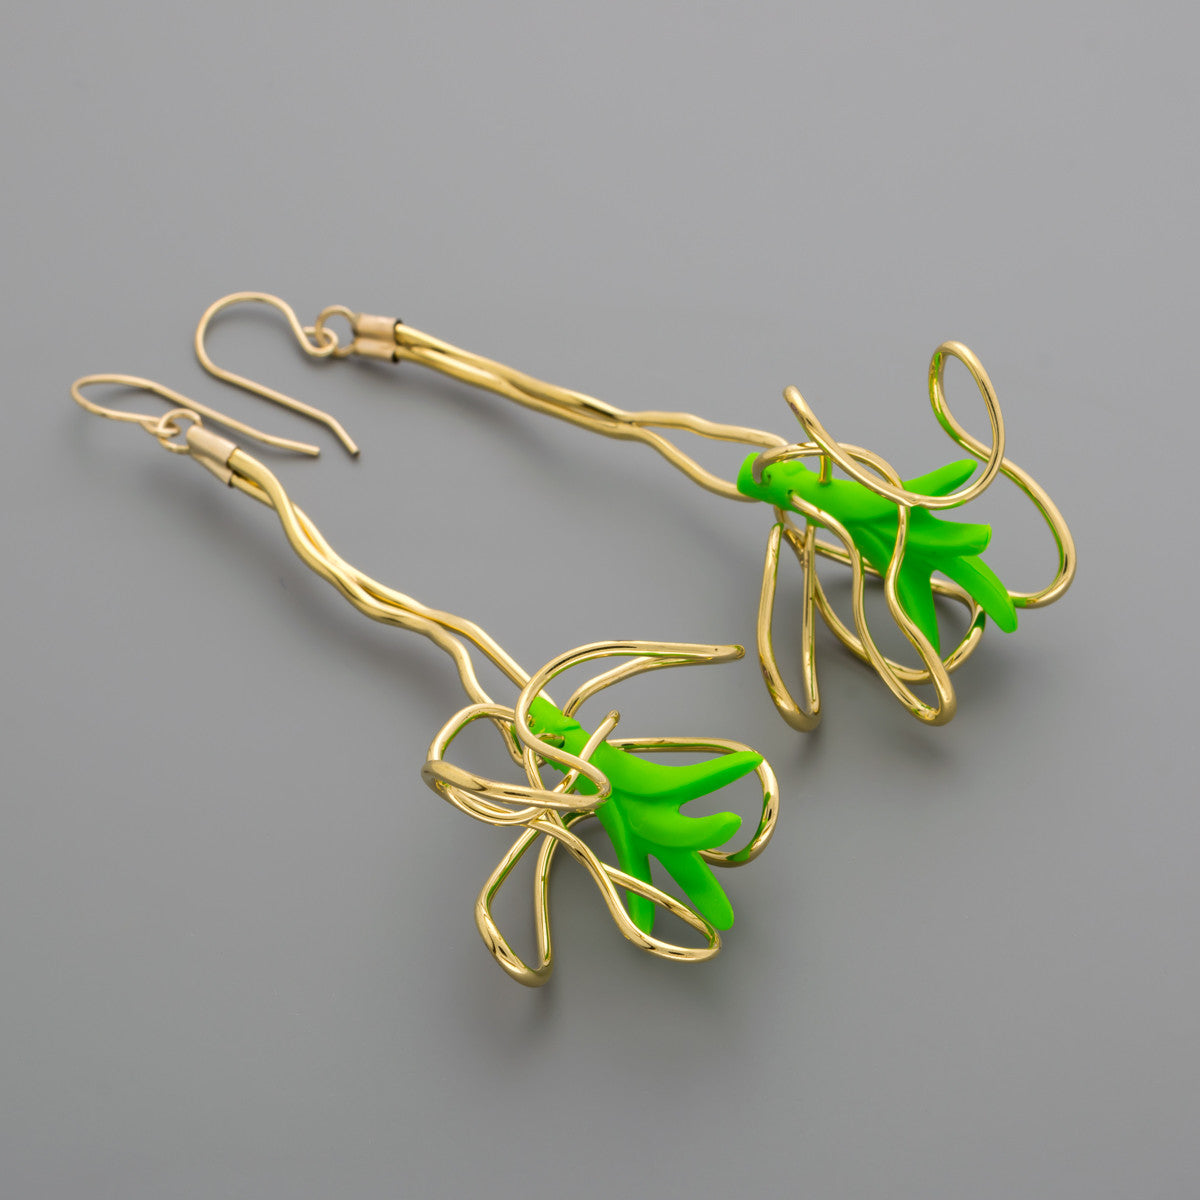 Toy leaves in gold wire earrings A-081 – Dave + Esty Jewelry lab